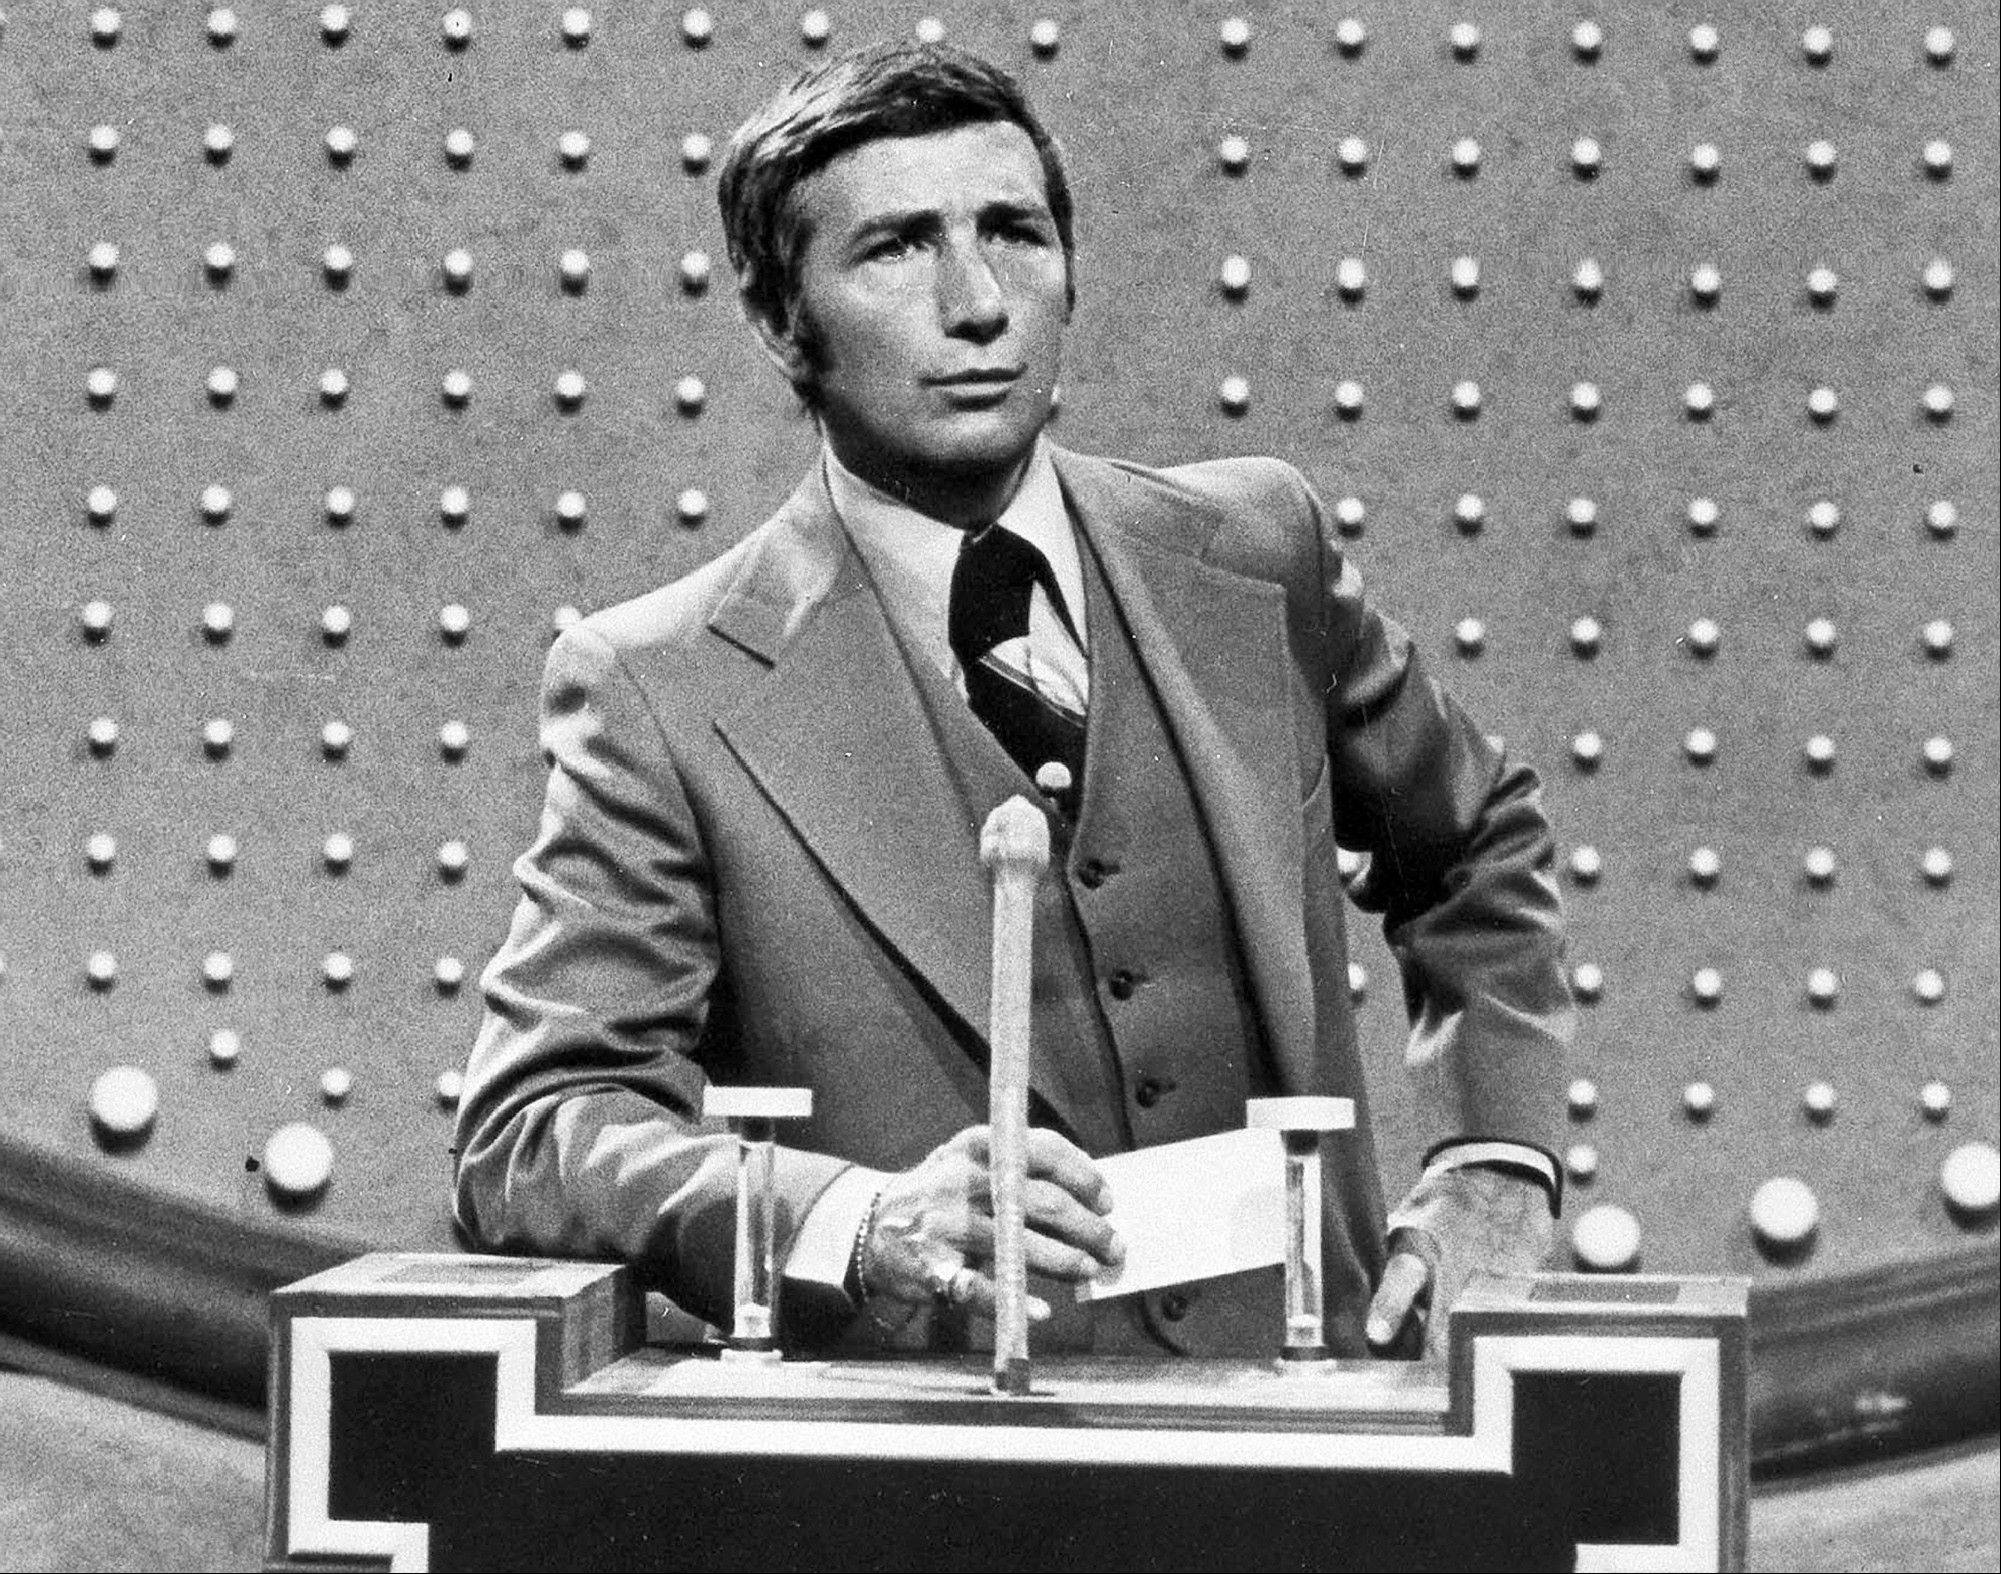 "Richard Dawson, the wisecracking British entertainer who was among the schemers in the 1960s sitcom ""Hogan's Heroes"" and a decade later began kissing thousands of female contestants as host of the game show ""Family Feud"" died June 2. He was 79."